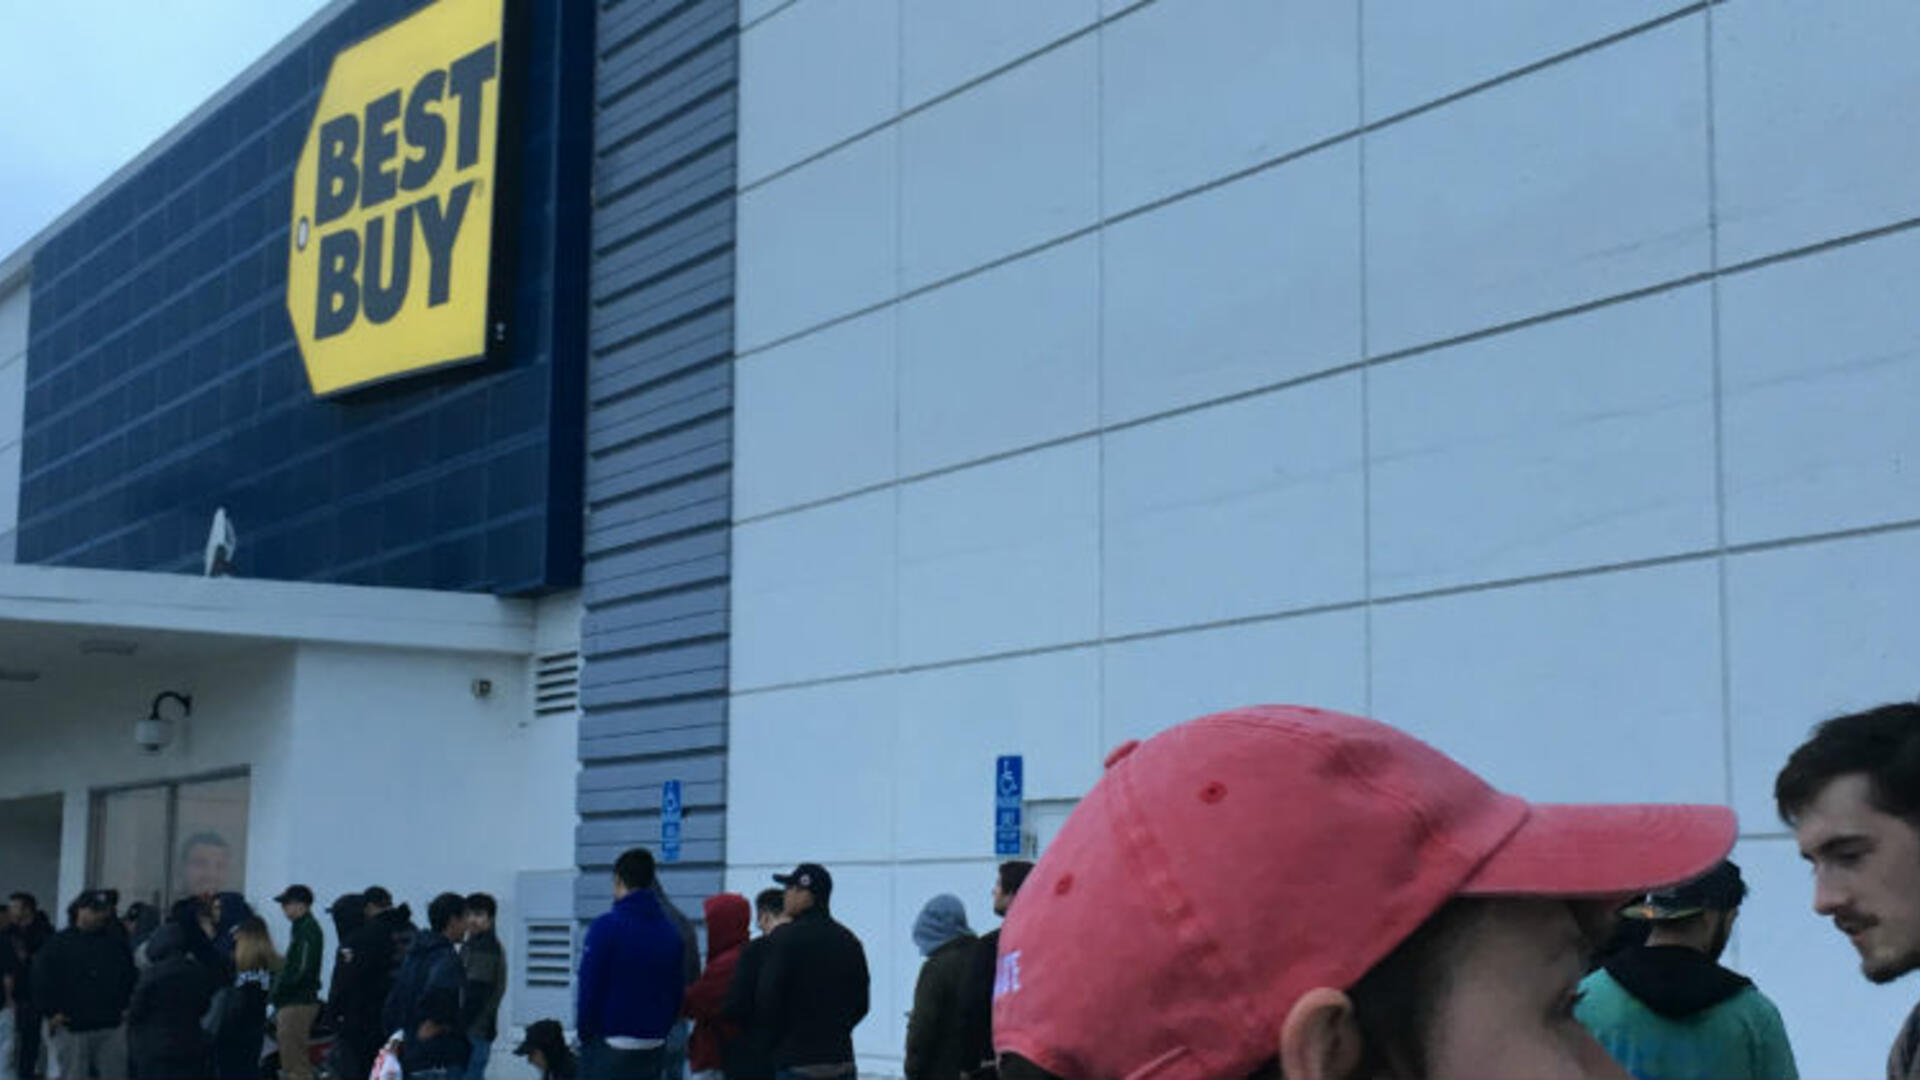 Hopeful SNES Classic Customers Face Long Lines at Target, Best Buy, and Walmart, but Most Come Away Happy